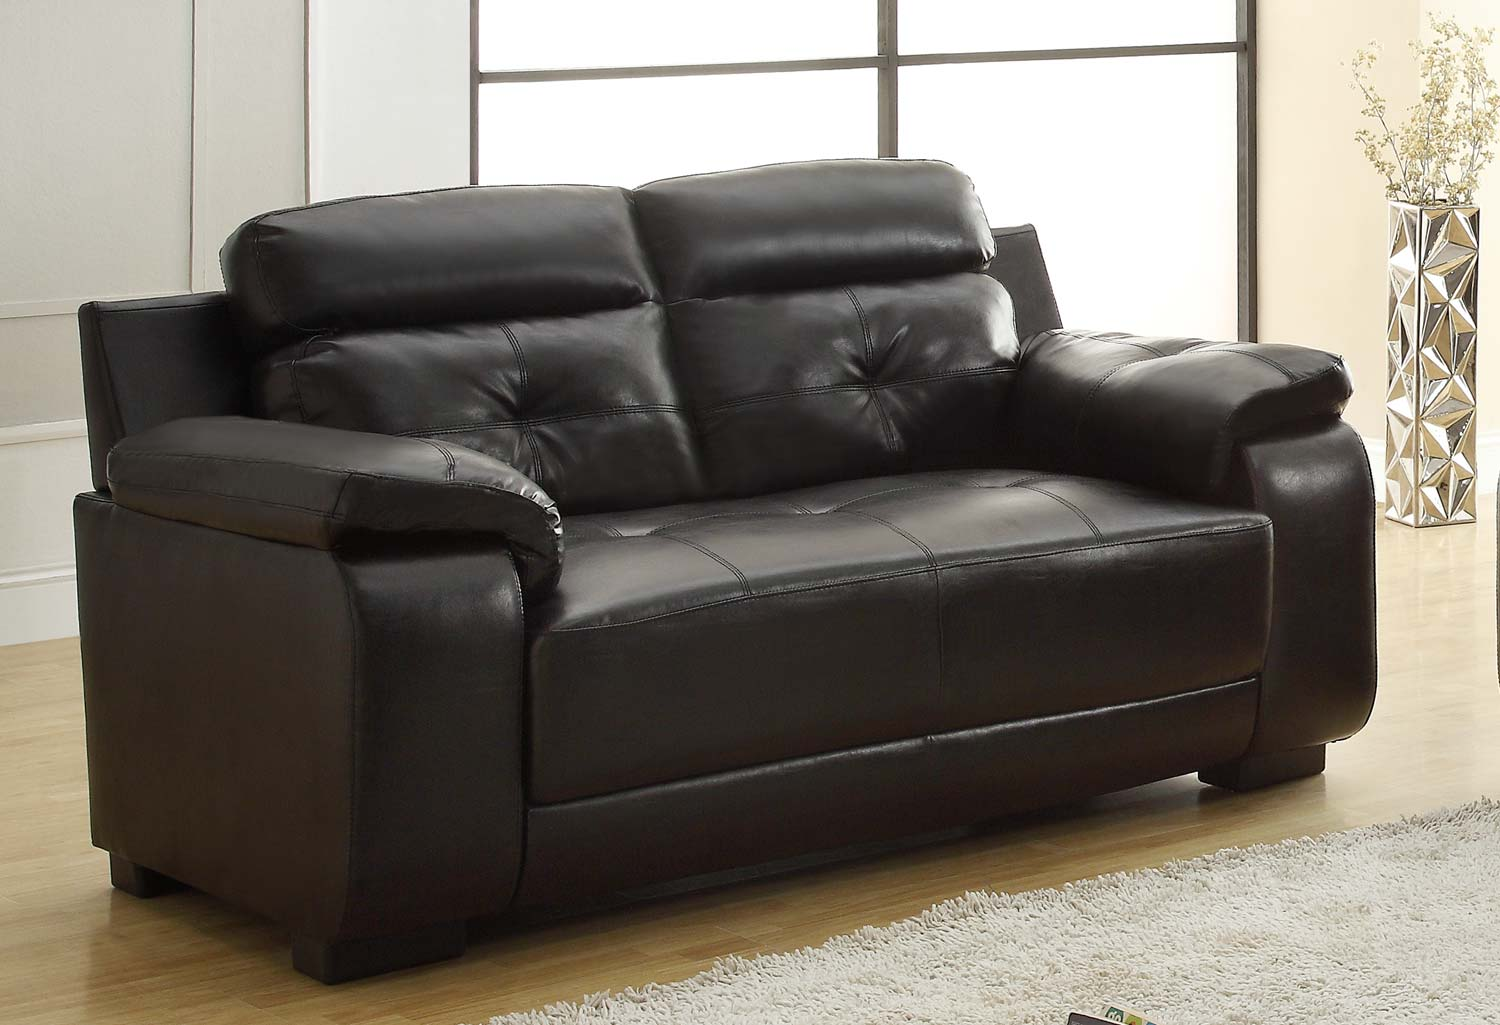 Homelegance Zane Love Seat  - Black - All Bonded Leather 9718BLK-2